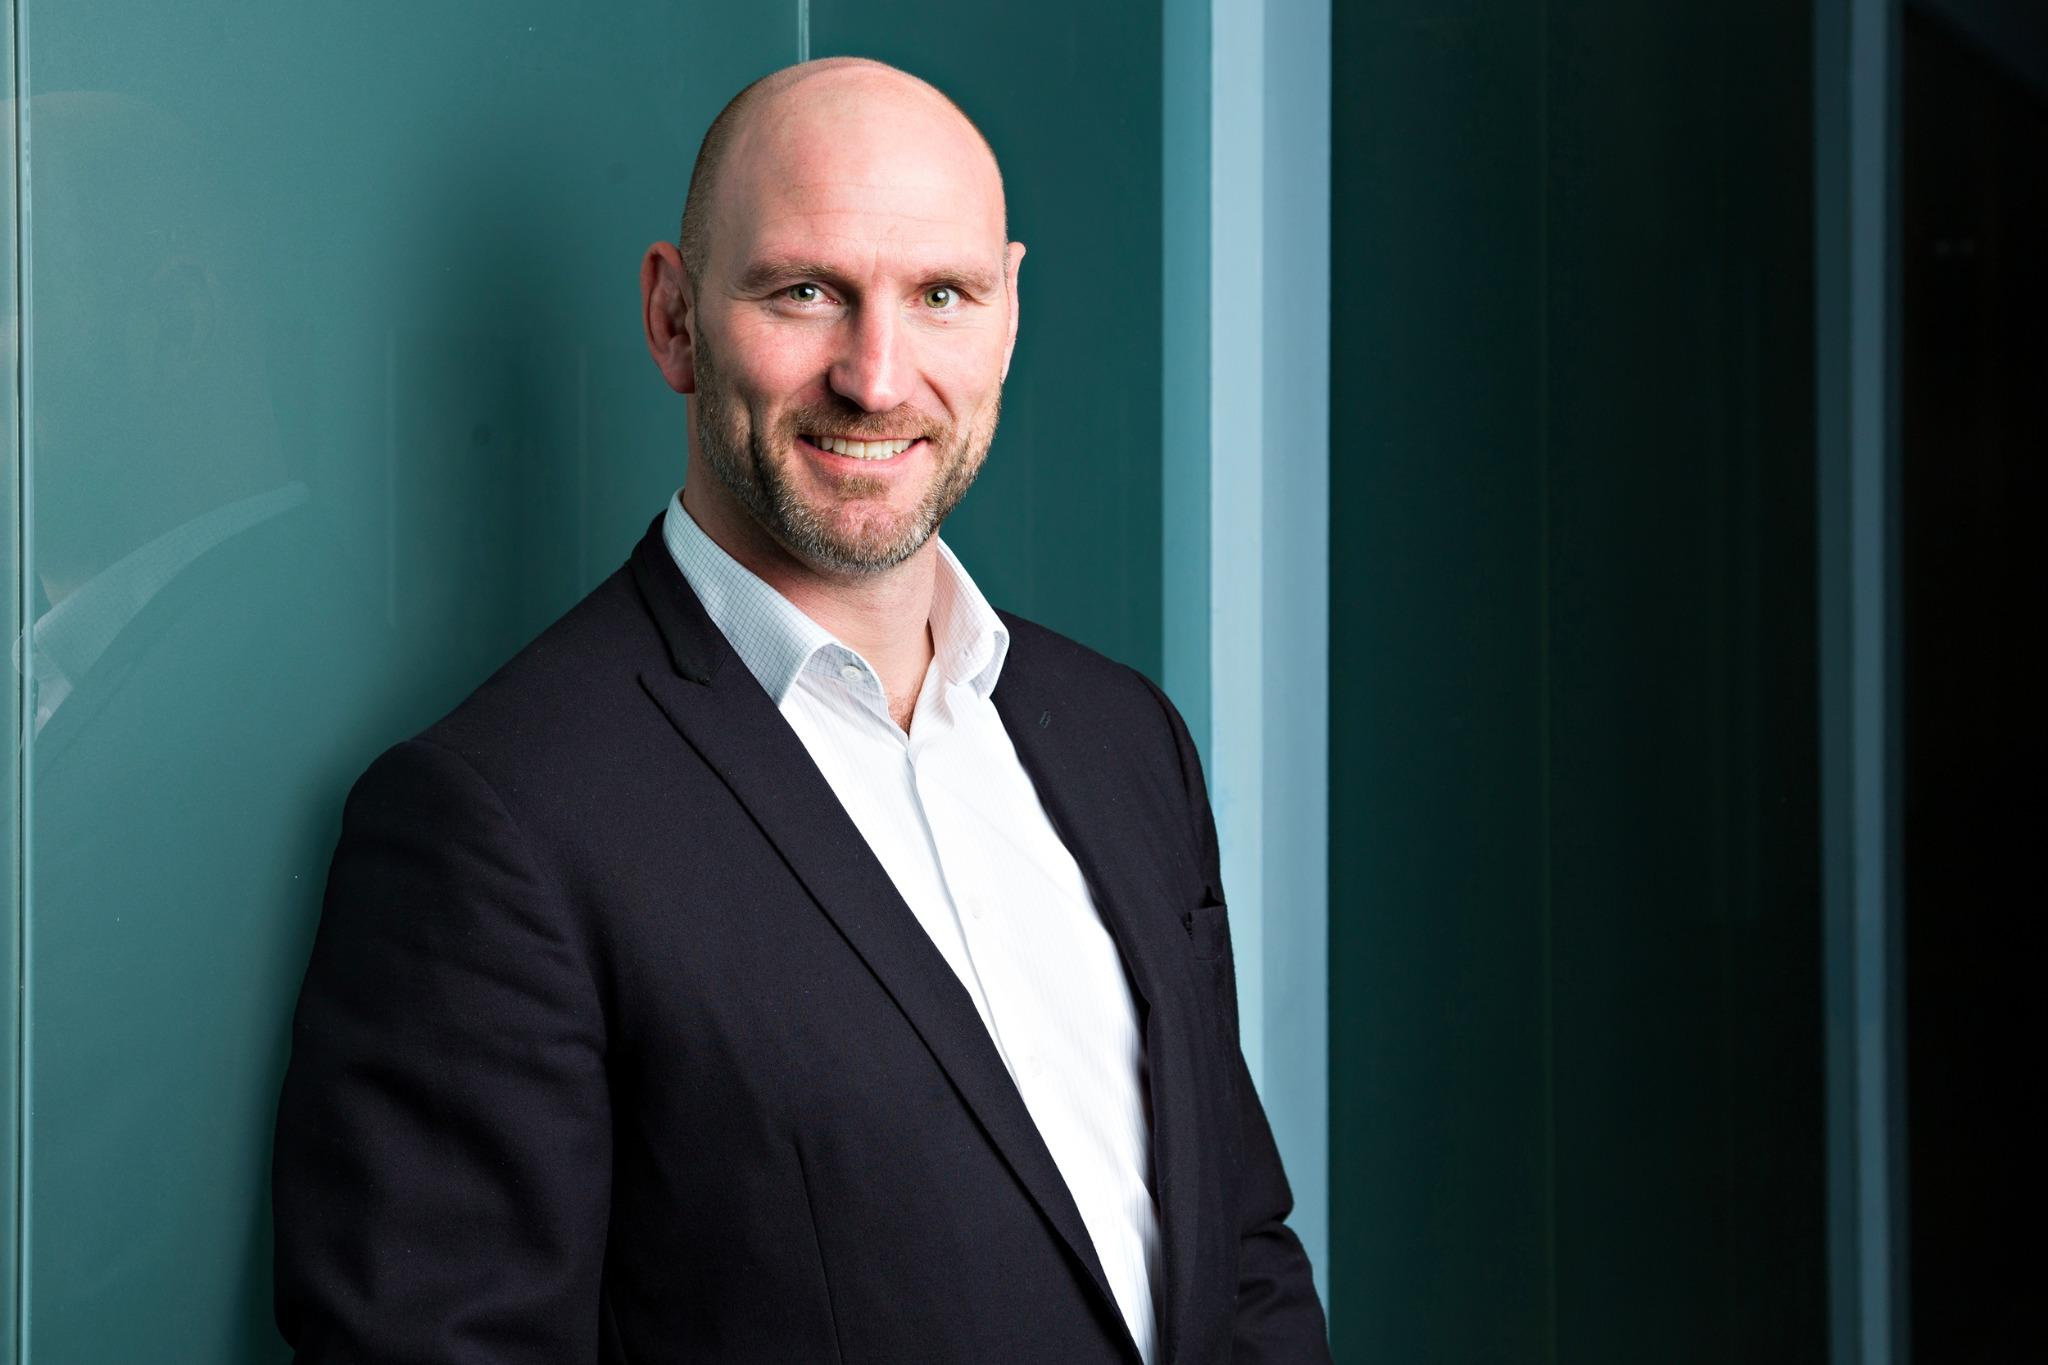 Friday afternoon read: @MarketingUK interview with @dallaglio8 http://t.co/vMYkyKNwhR http://t.co/7betQkJPC4